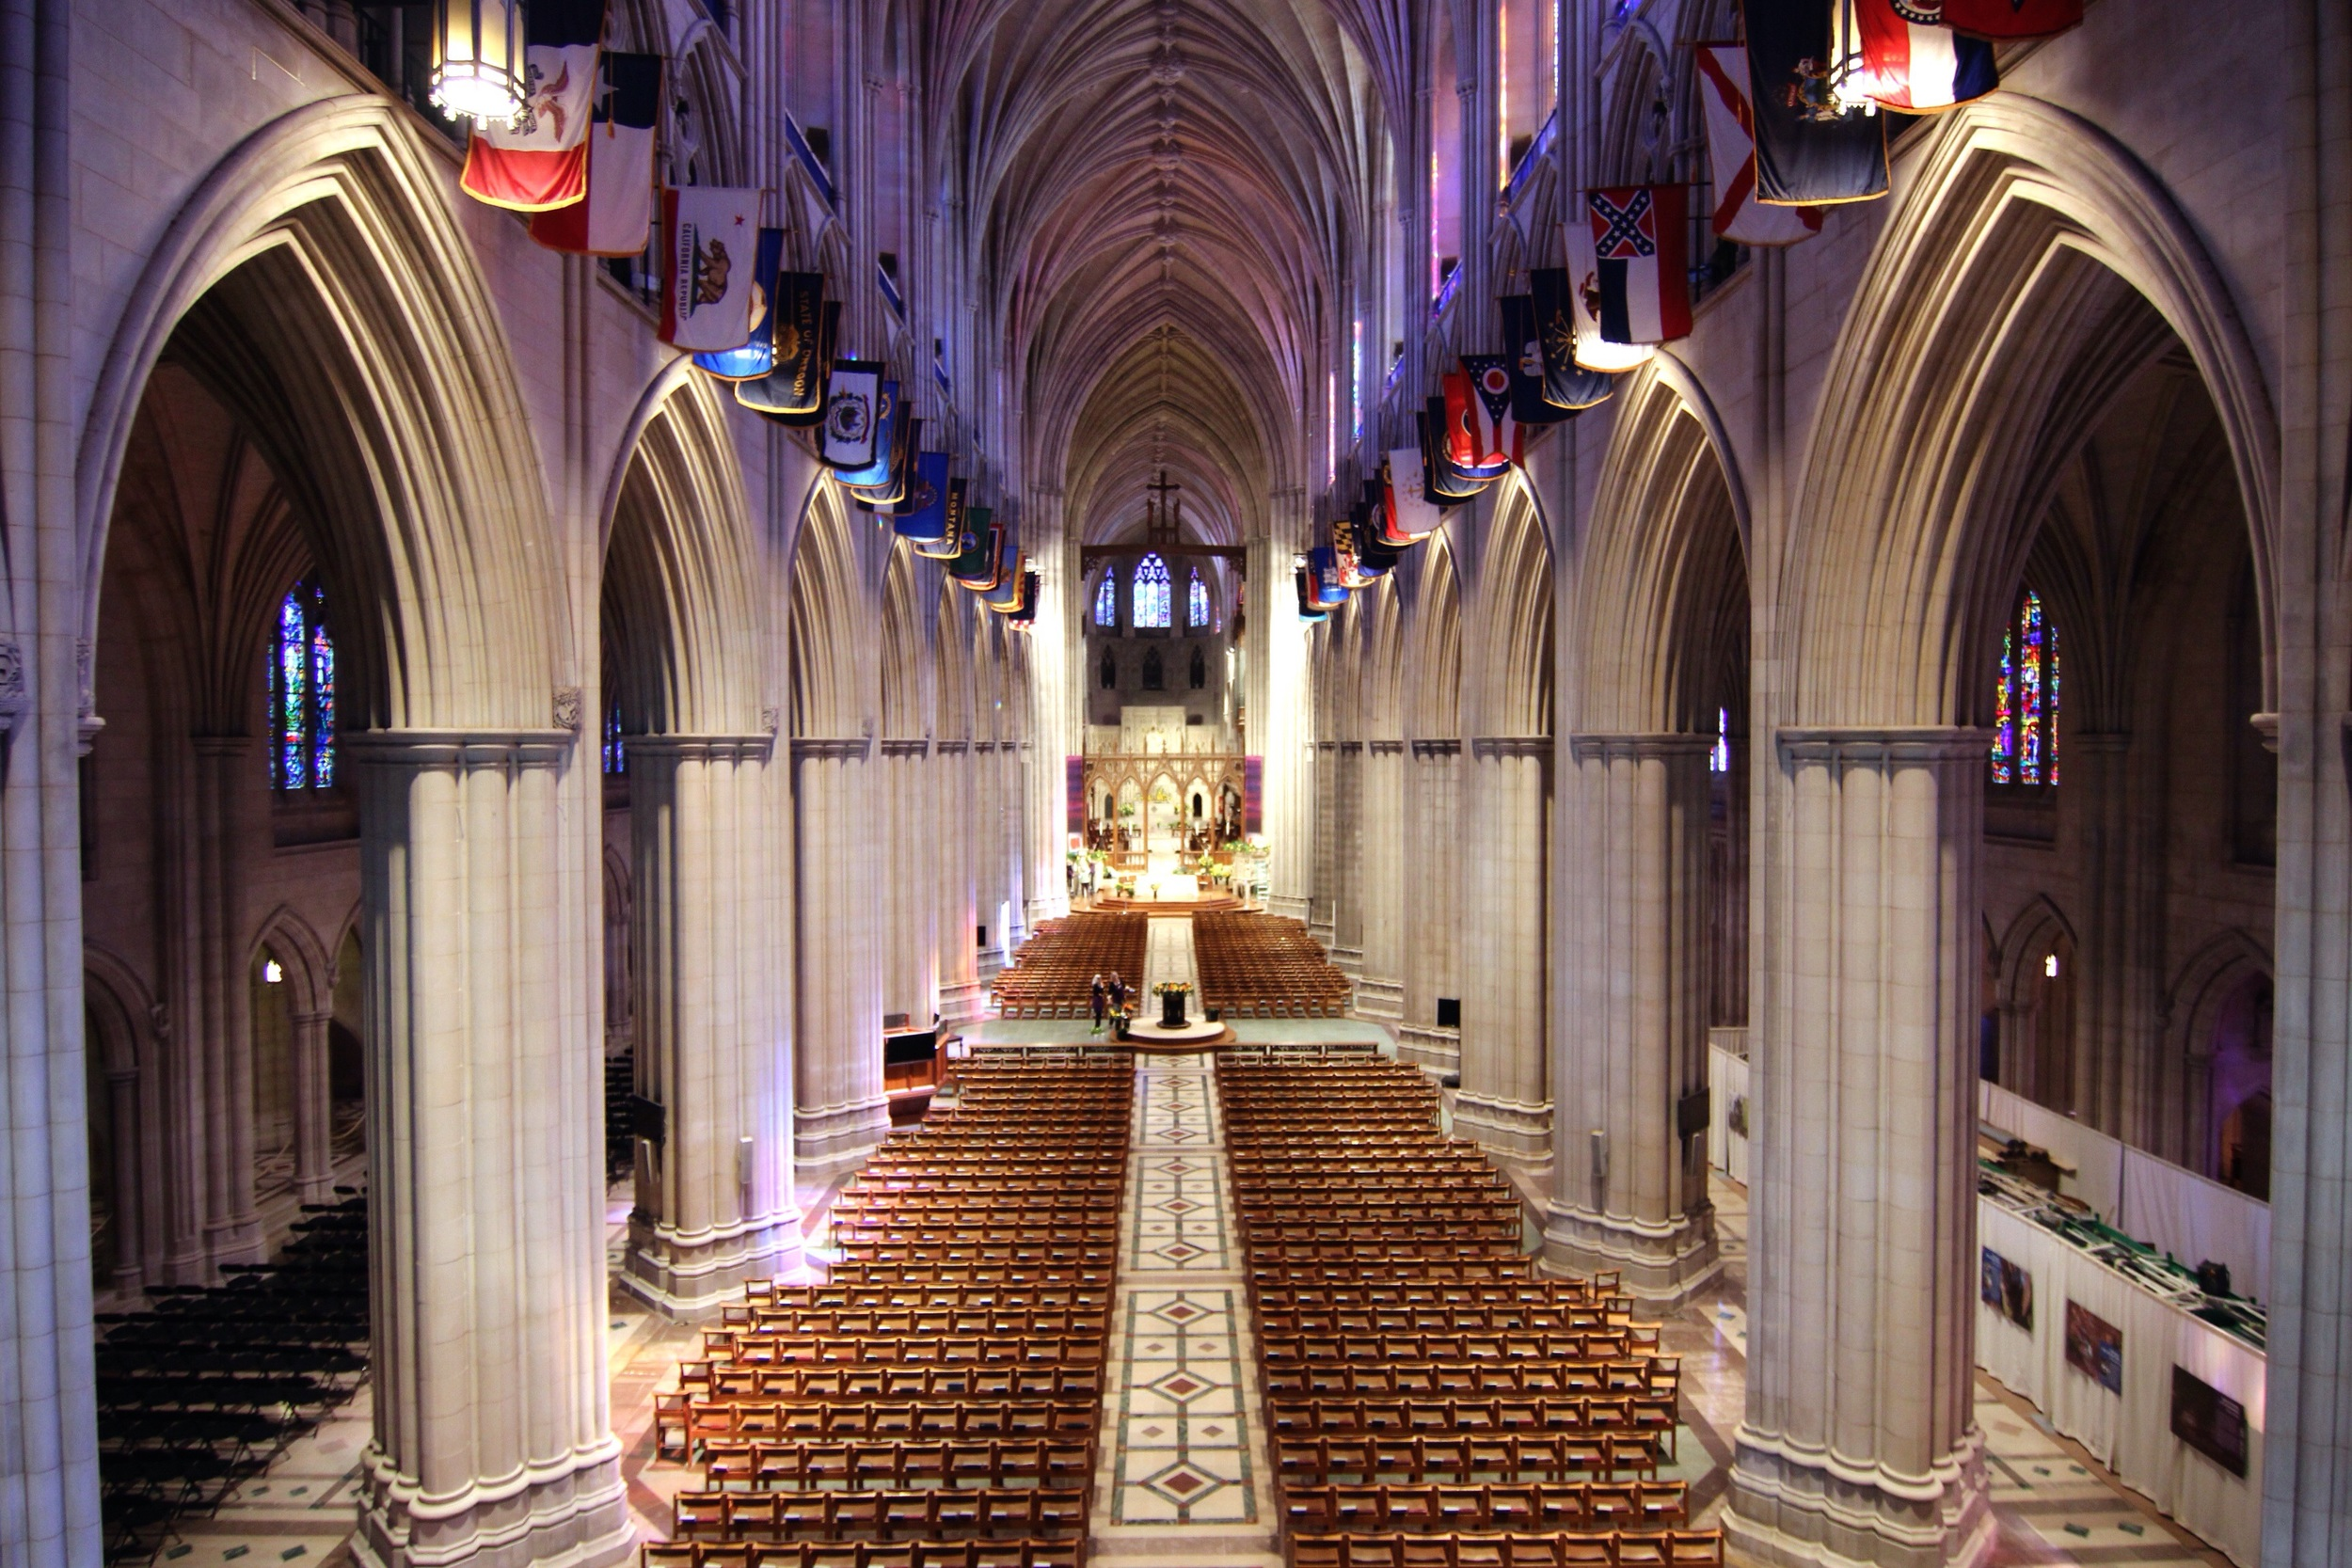 Inside the National Cathedral.